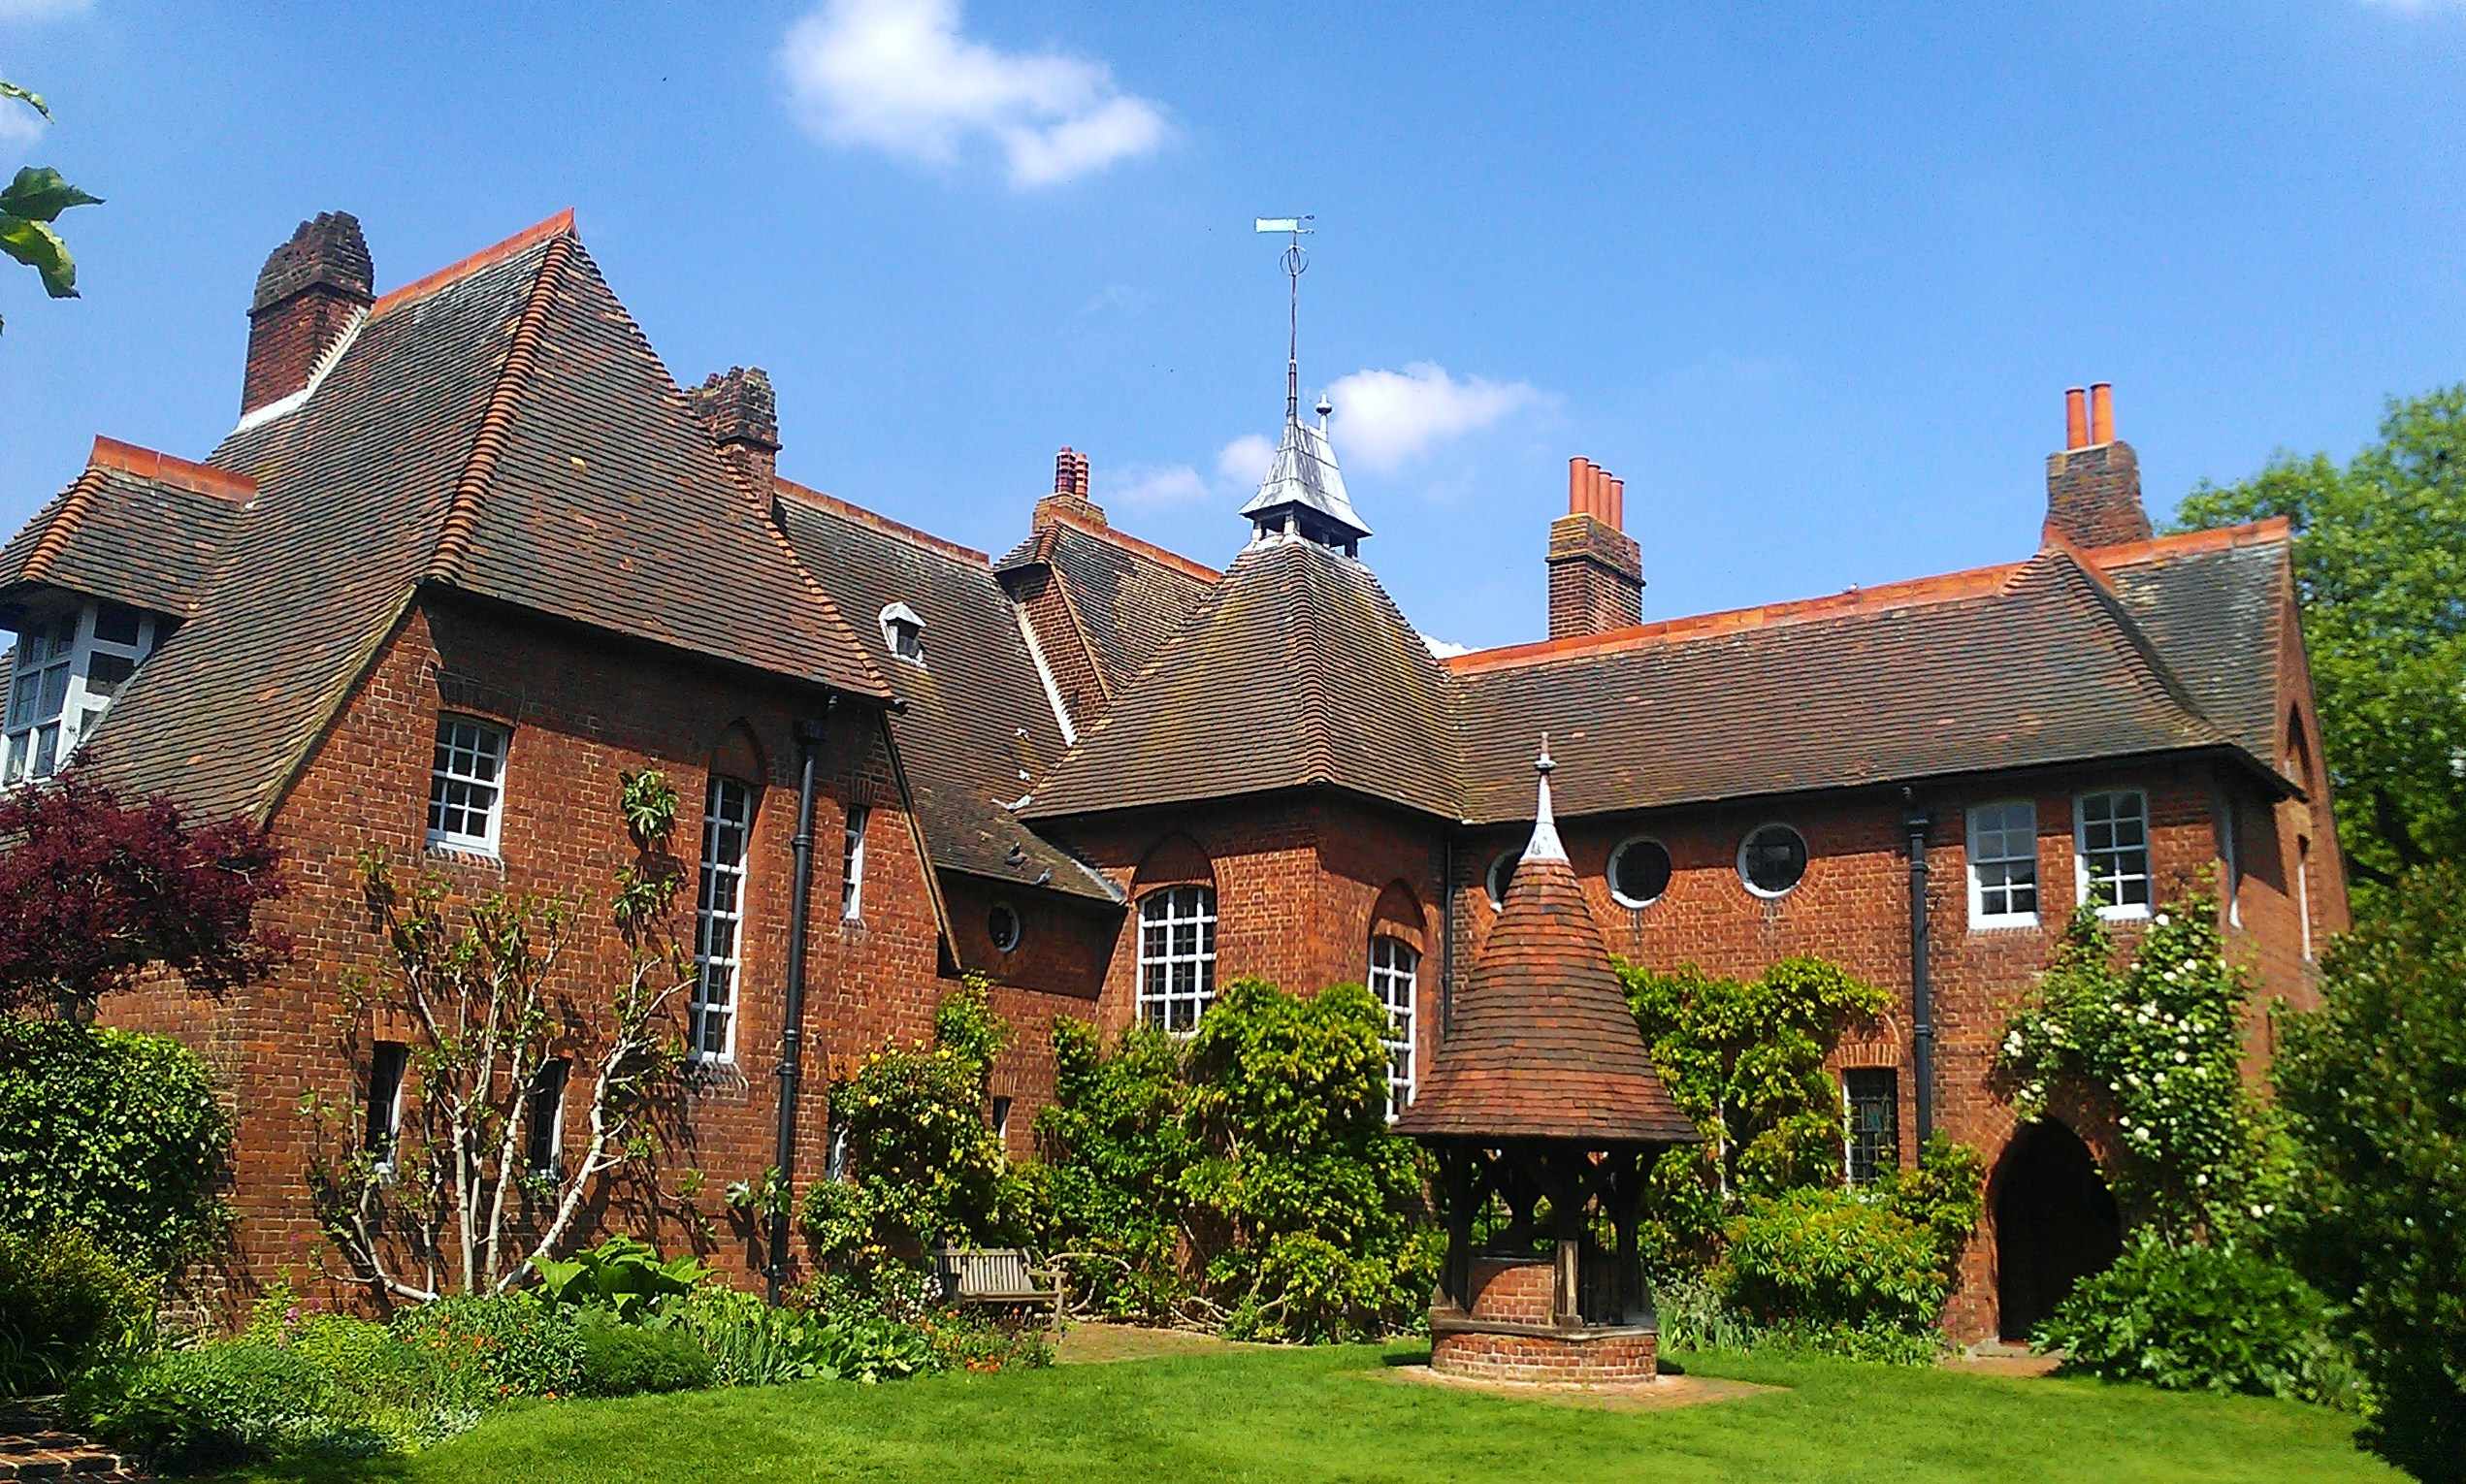 File:Philip Webb's Red House in Upton.jpg - Wikimedia Commons